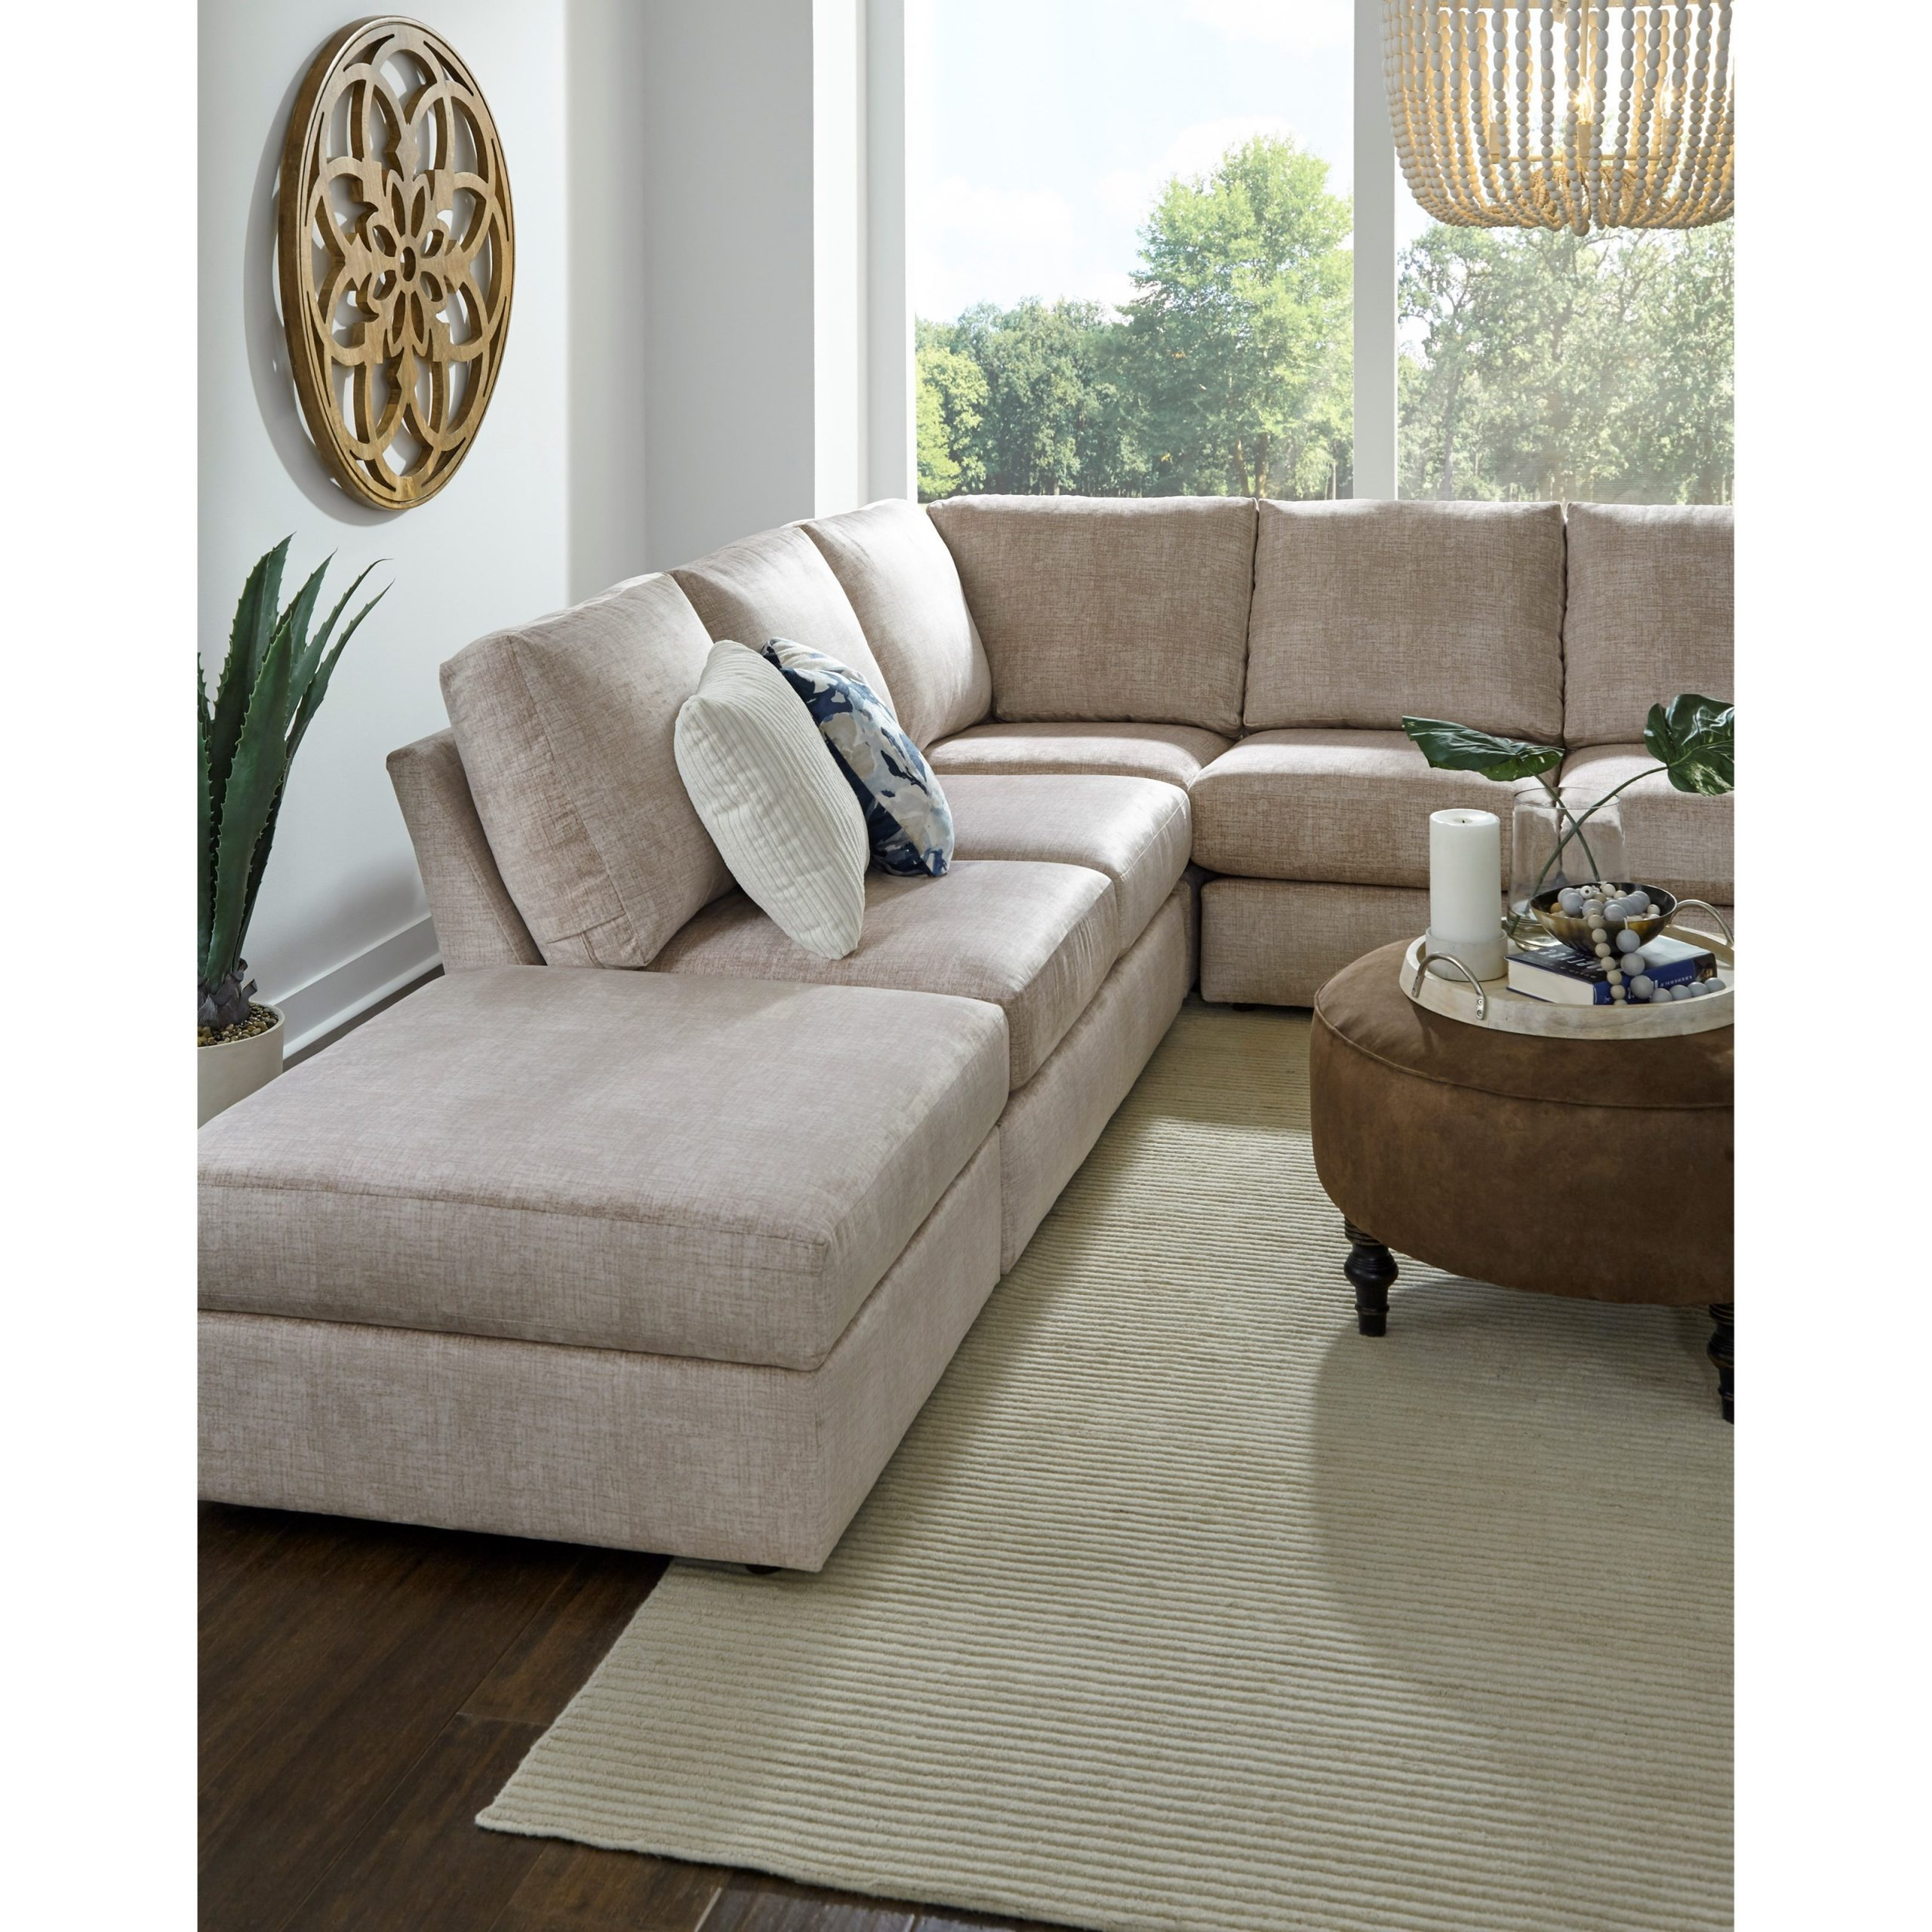 Best Home Furnishings Dovely Five Seat Sectional Sofa With Regarding Copenhagen Reversible Small Space Sectional Sofas With Storage (View 1 of 15)